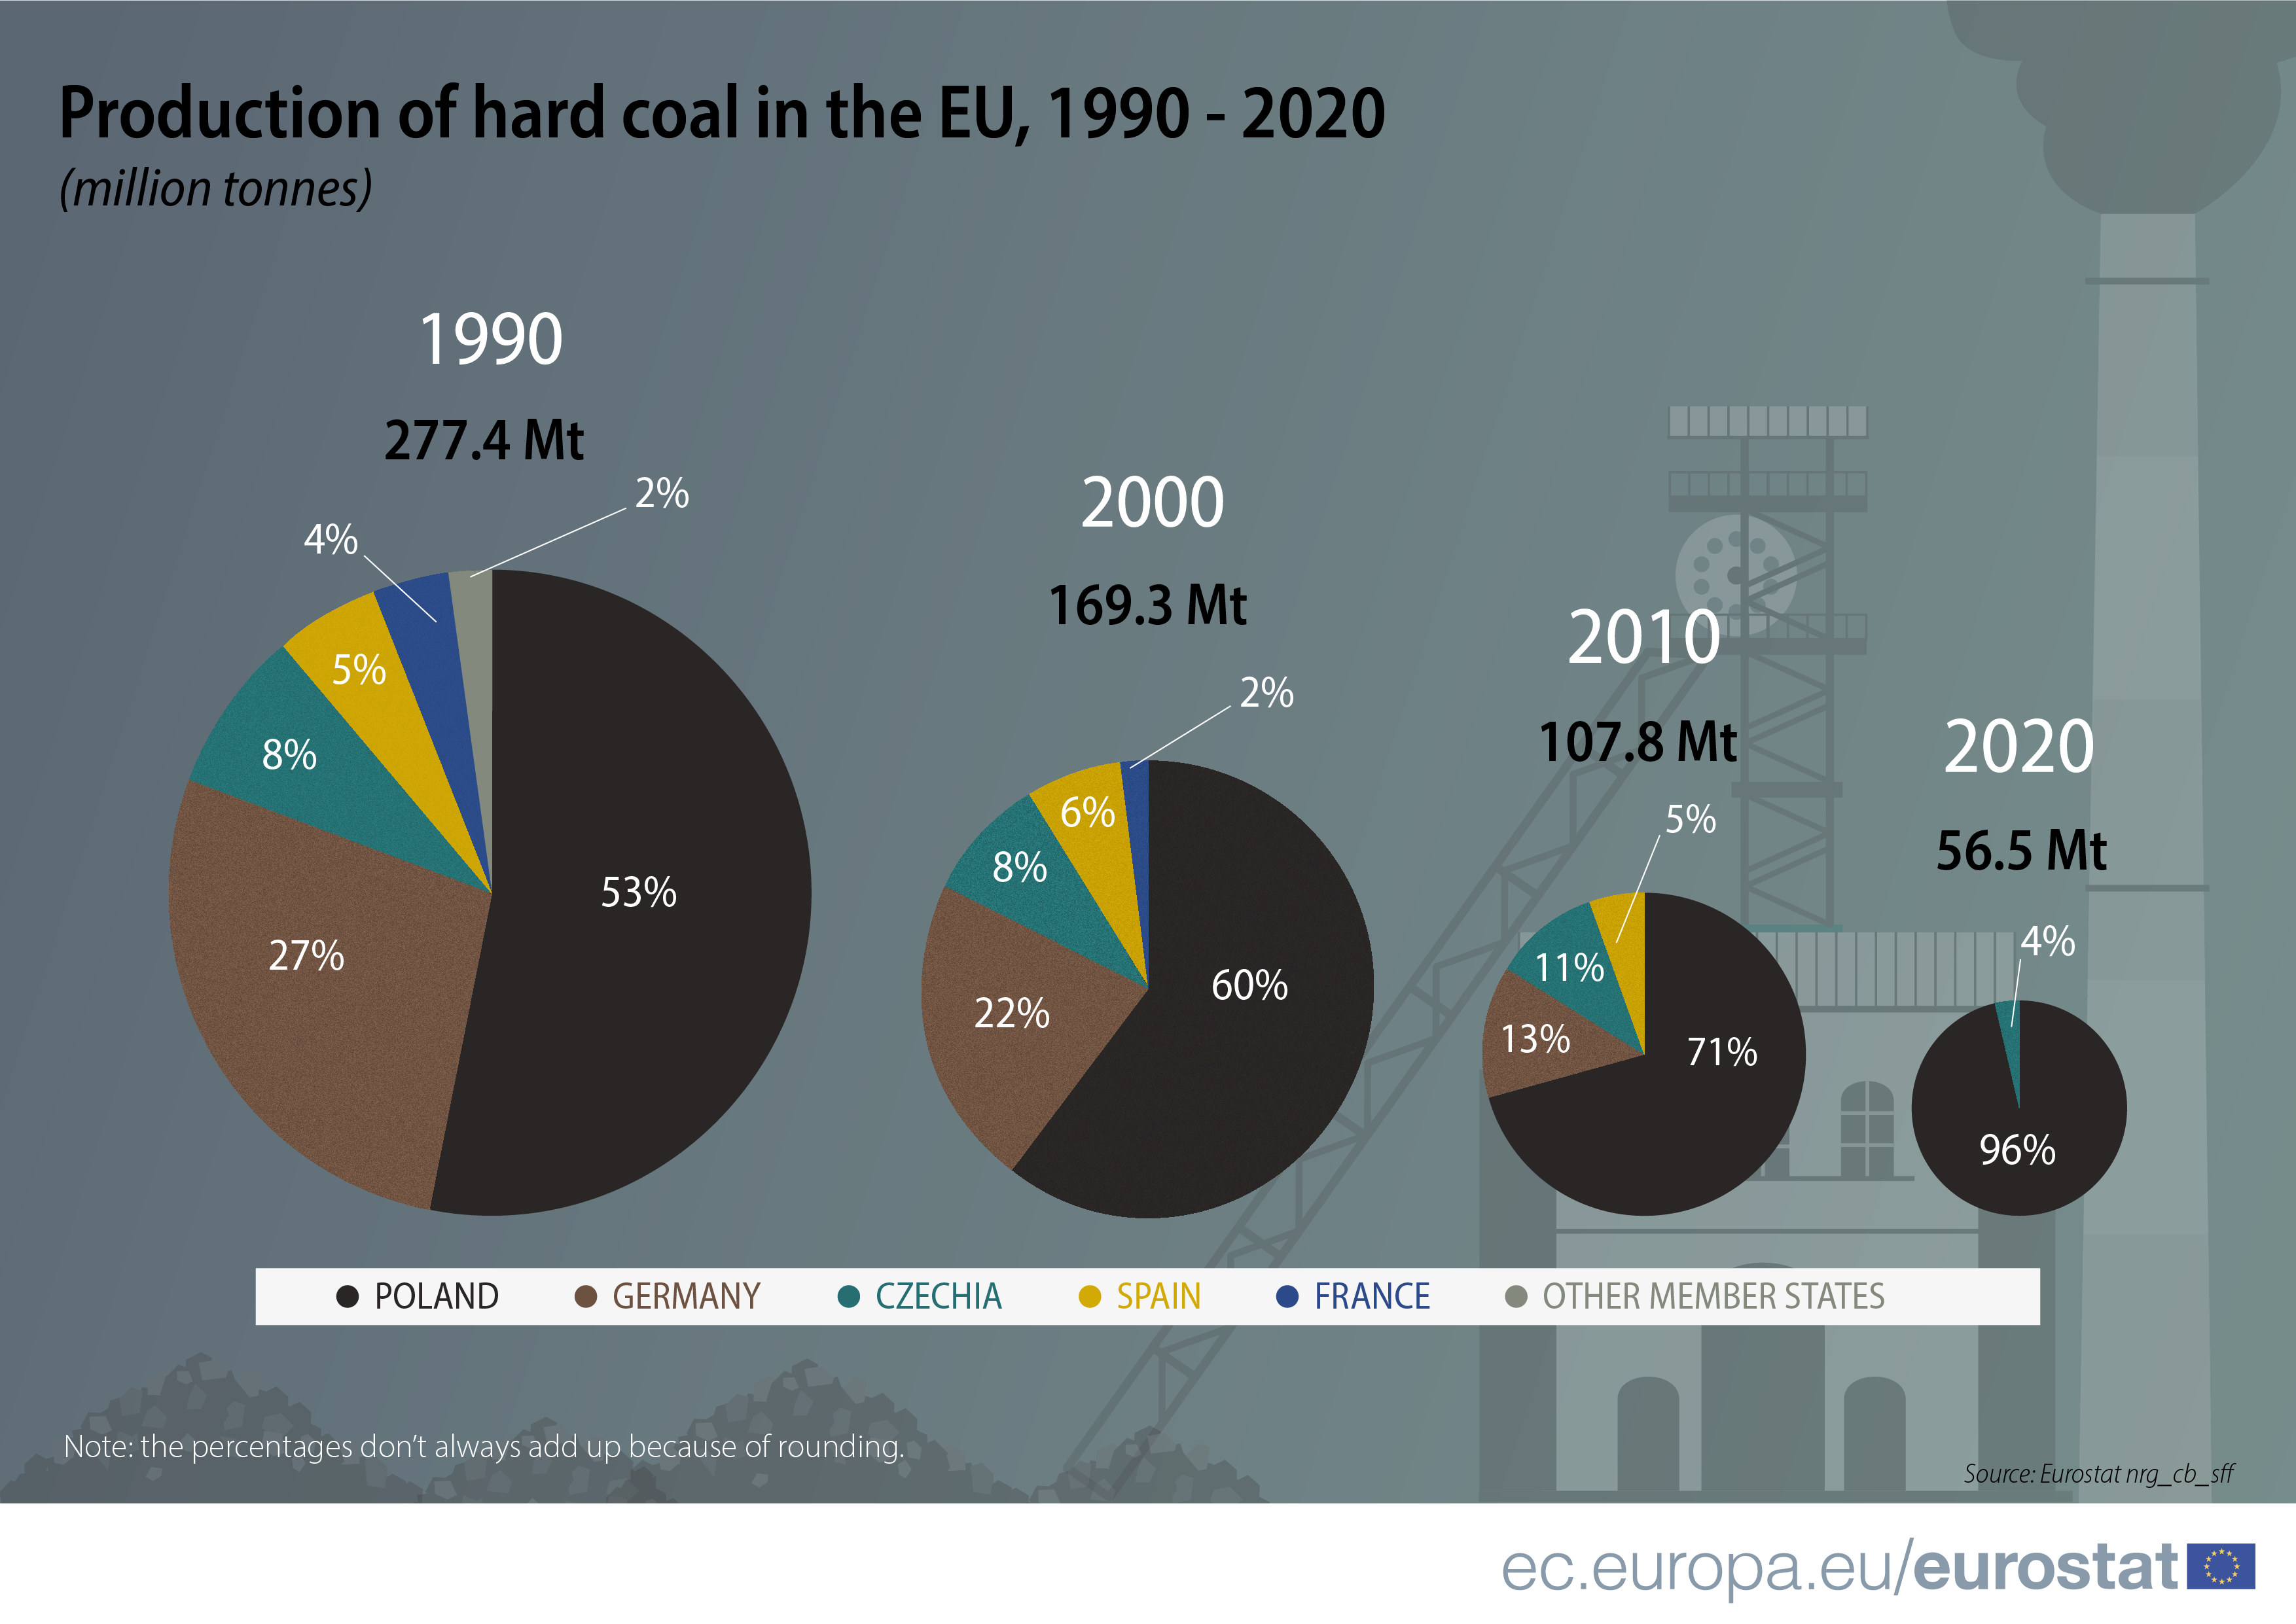 A series of pie charts showing the decreasing total amount of the hard coal production in the EU from 1990 to 2020 (from 277.4 million tonnes to 56.5 million tonnes), as well as the decreasing number of producing countries in the same period (from more than 6 producers to only 2 producing countries in 2020: Poland and Czechia)